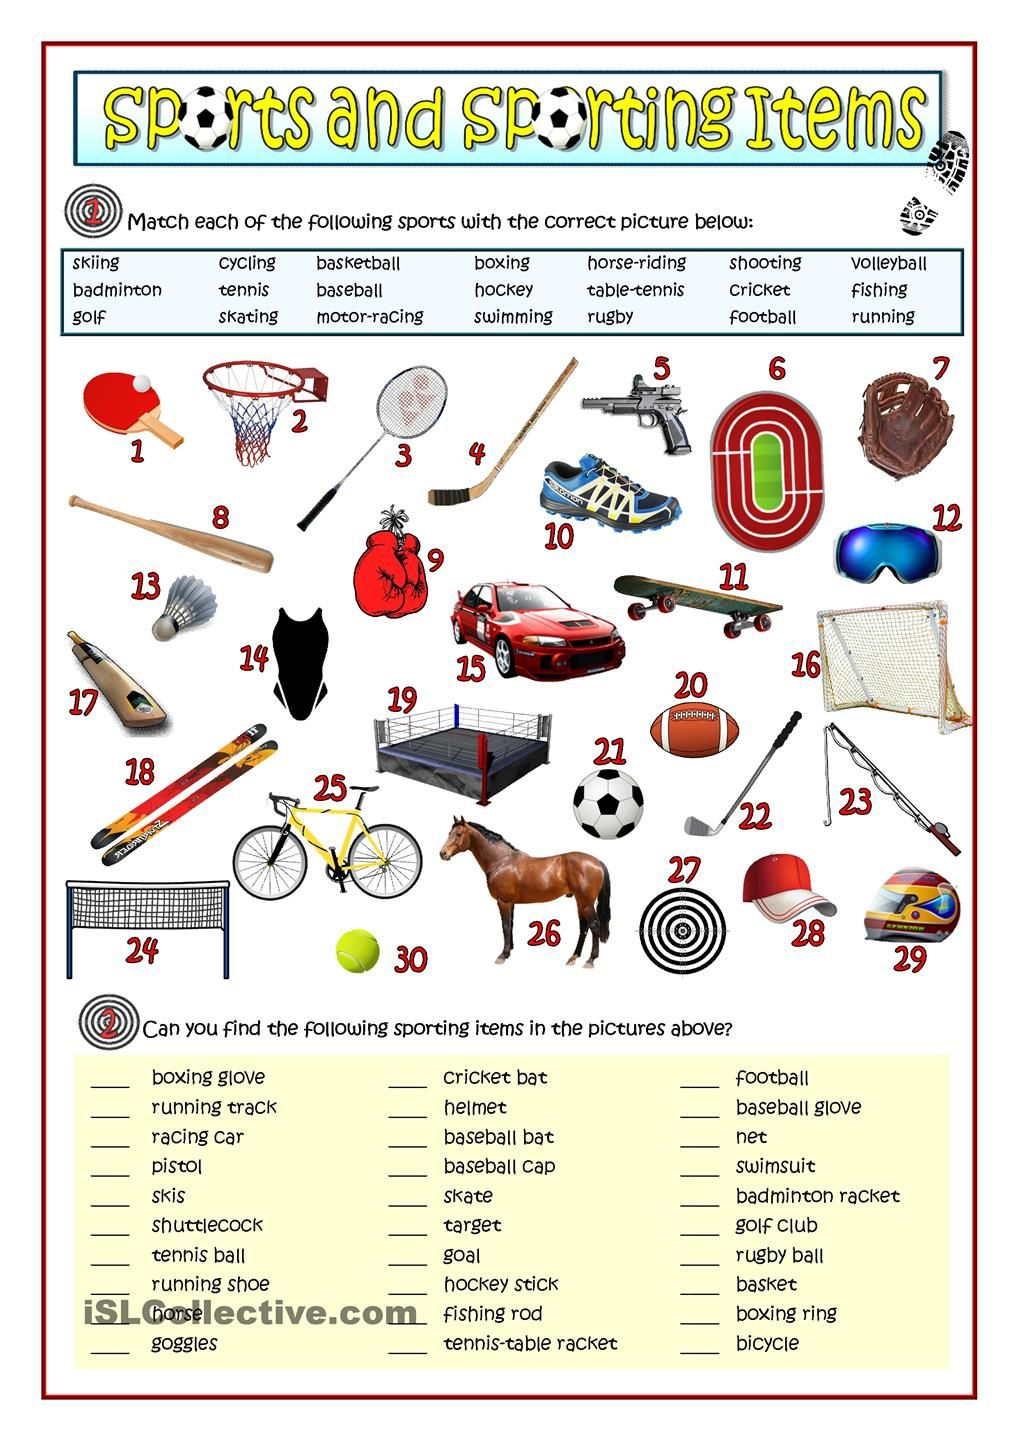 SPORTS AND SPORTING ITEMS | sports and hobbies | Pinterest ...